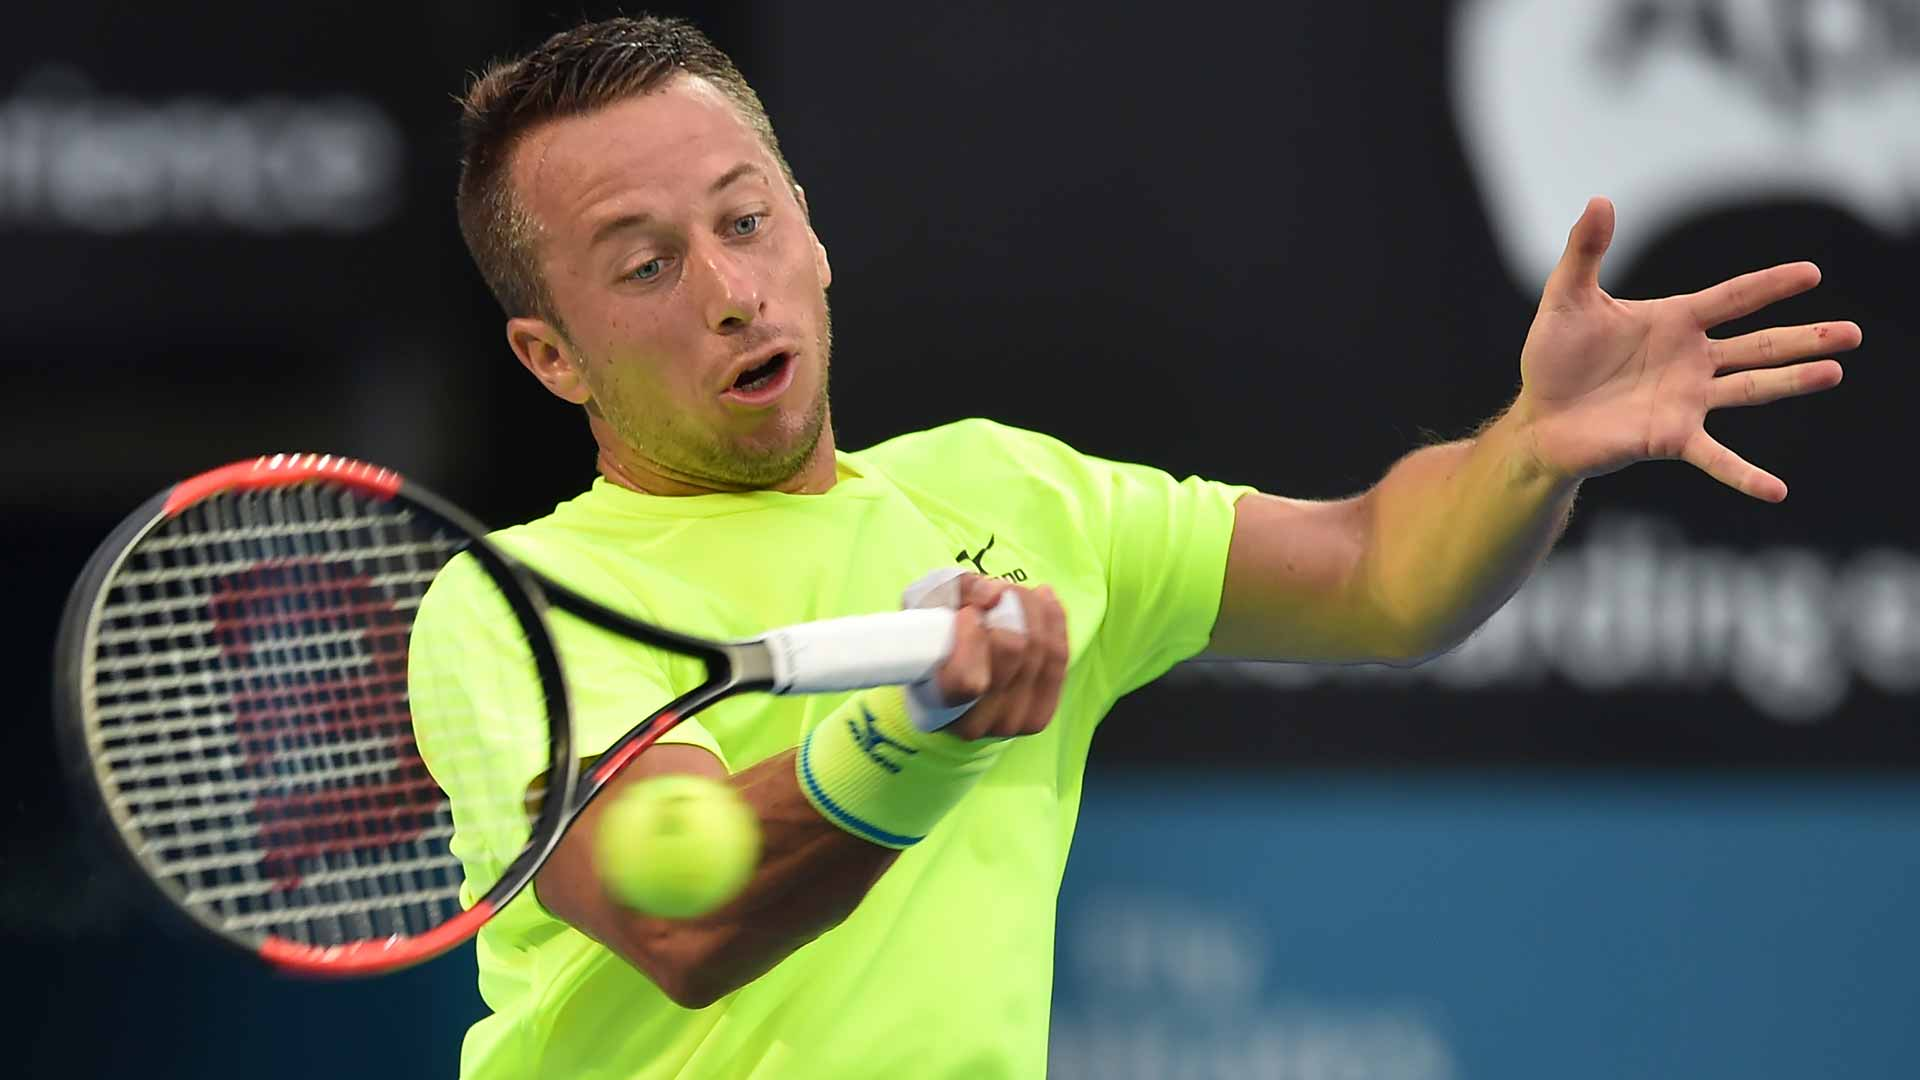 Fifth seed Philipp Kohlschreiber eased into the second round over Fabio Fognini.